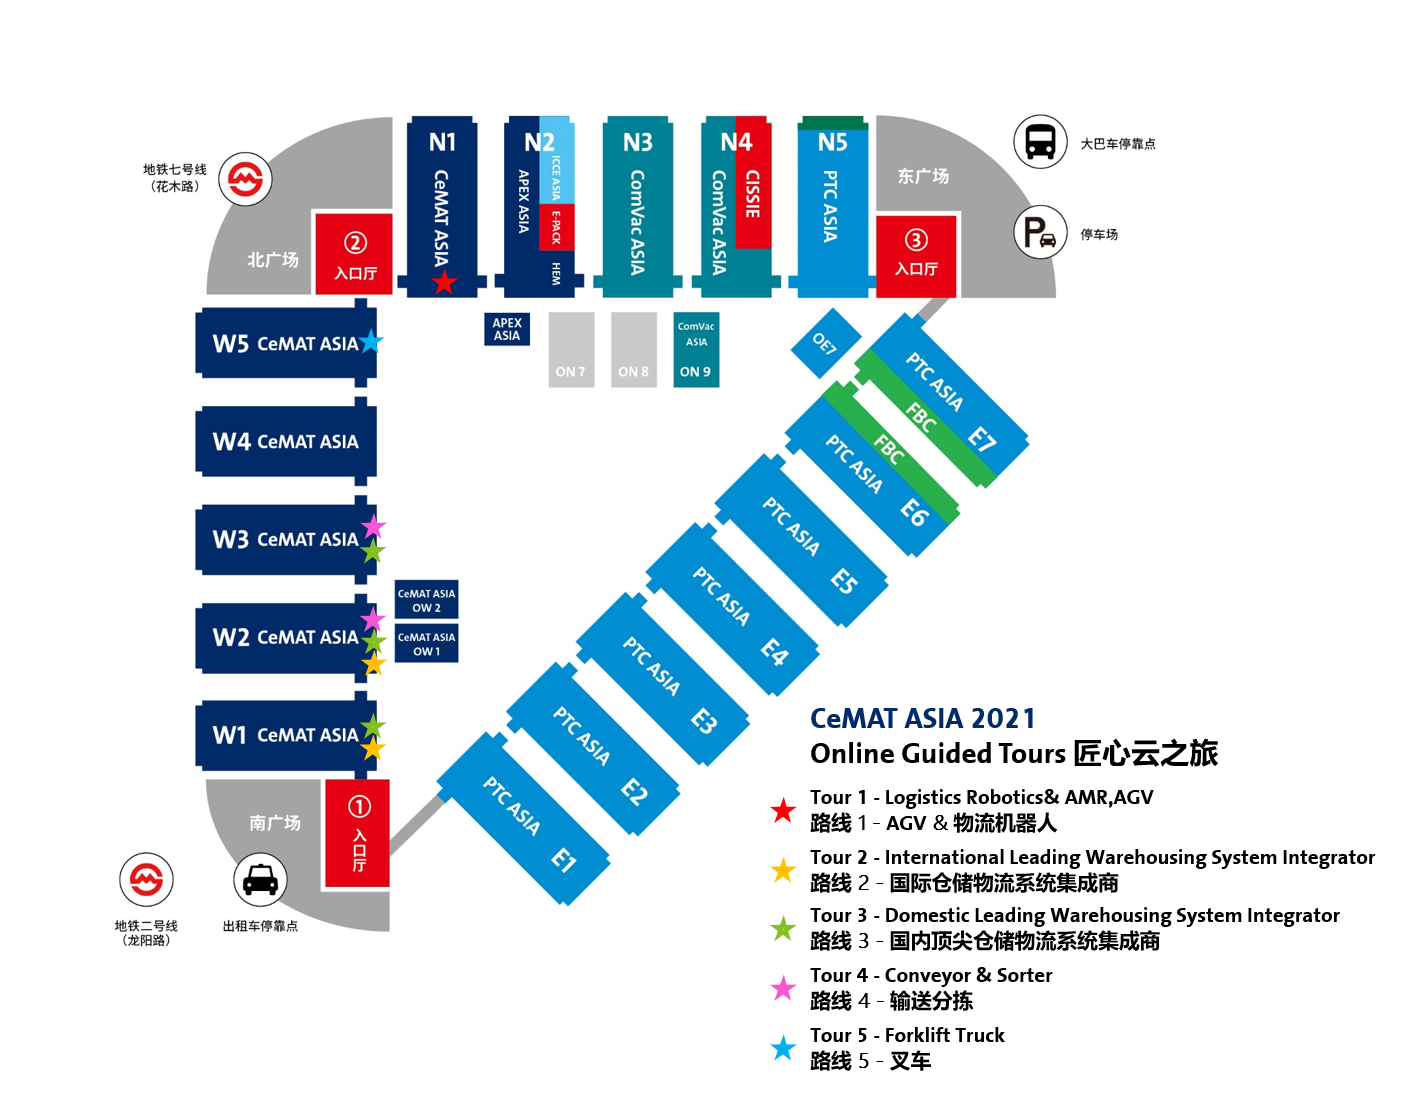 CeMAT21_Online Guided Tours_Map 211015.png.png